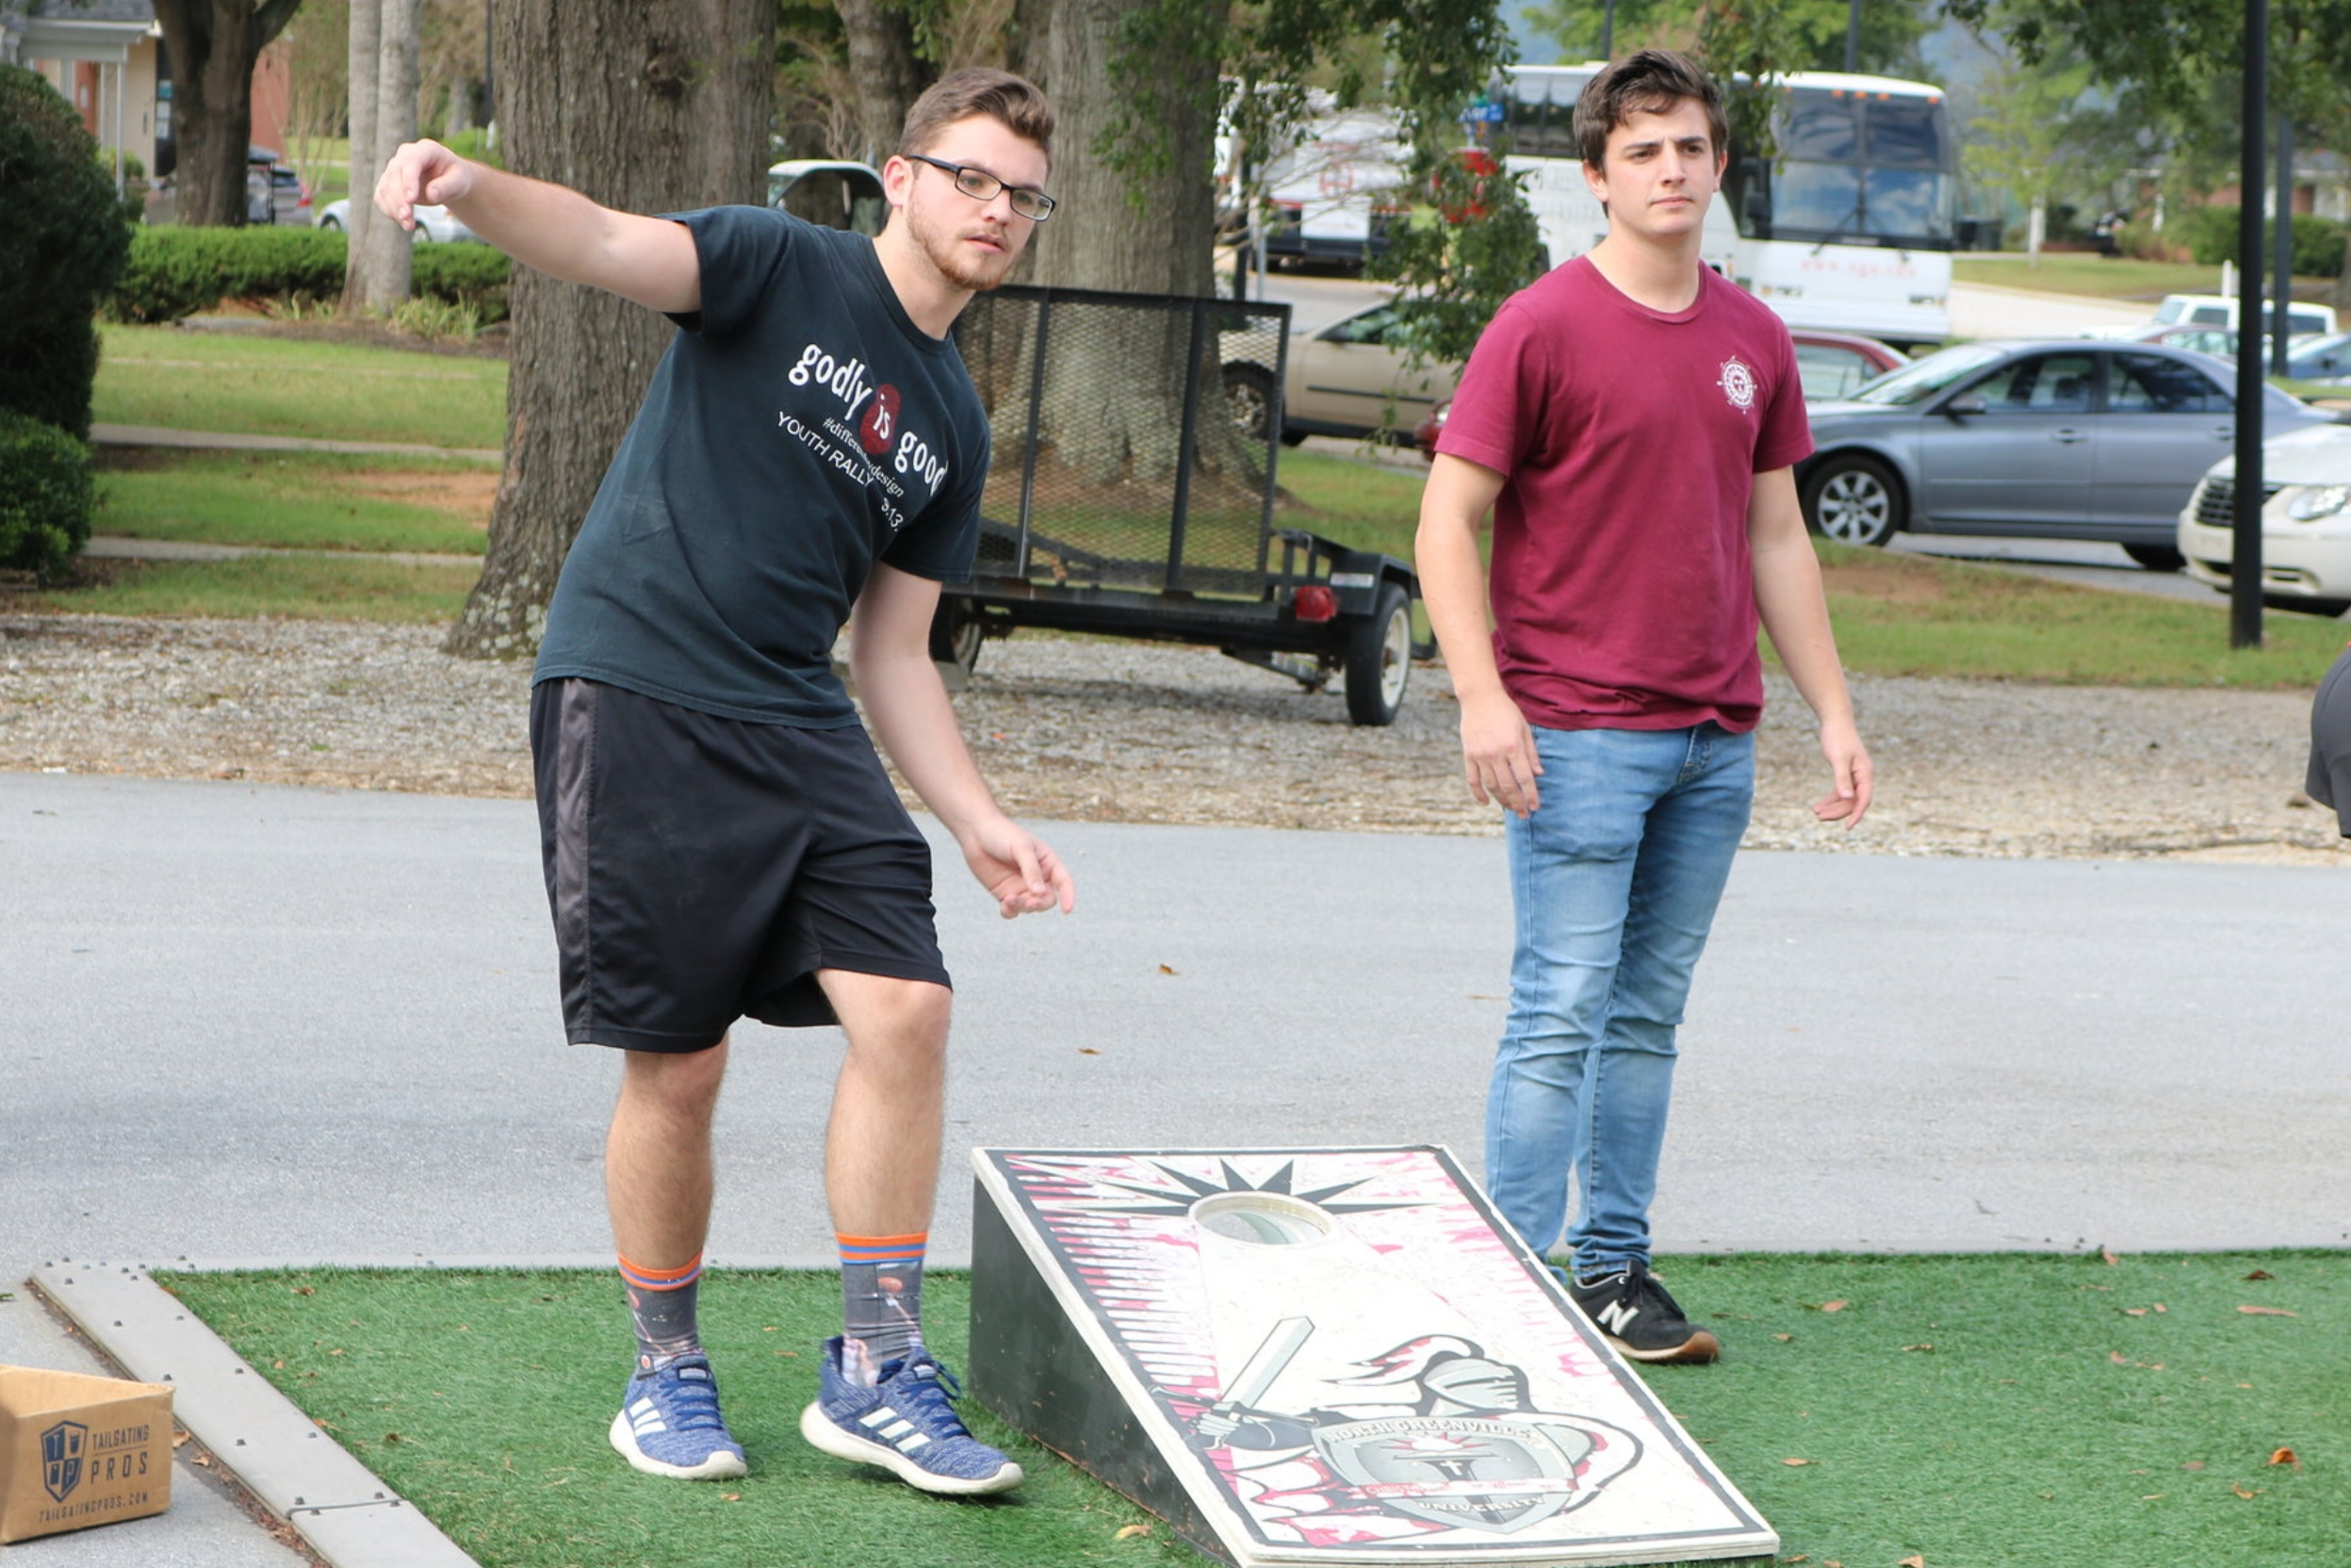 Junior, Jonny Hannah and senior, Jon Andrews are focusing in on winning for their clubs when playing in the Corn-Hole Tournament Tuesday afternoon.